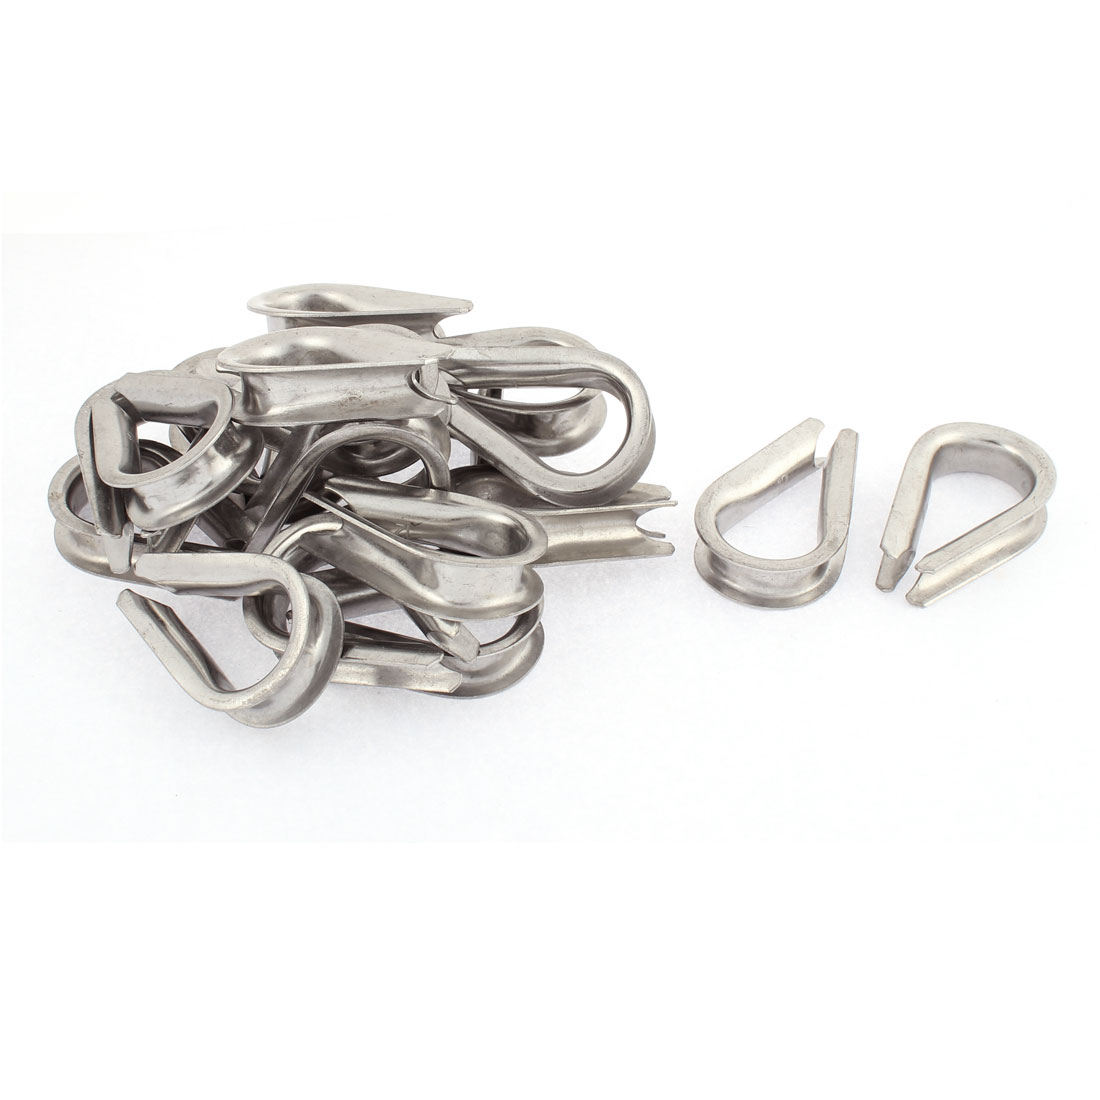 12mm Standard Wire Rope Cable Thimbles Rigging Lifting Gear 20pcs